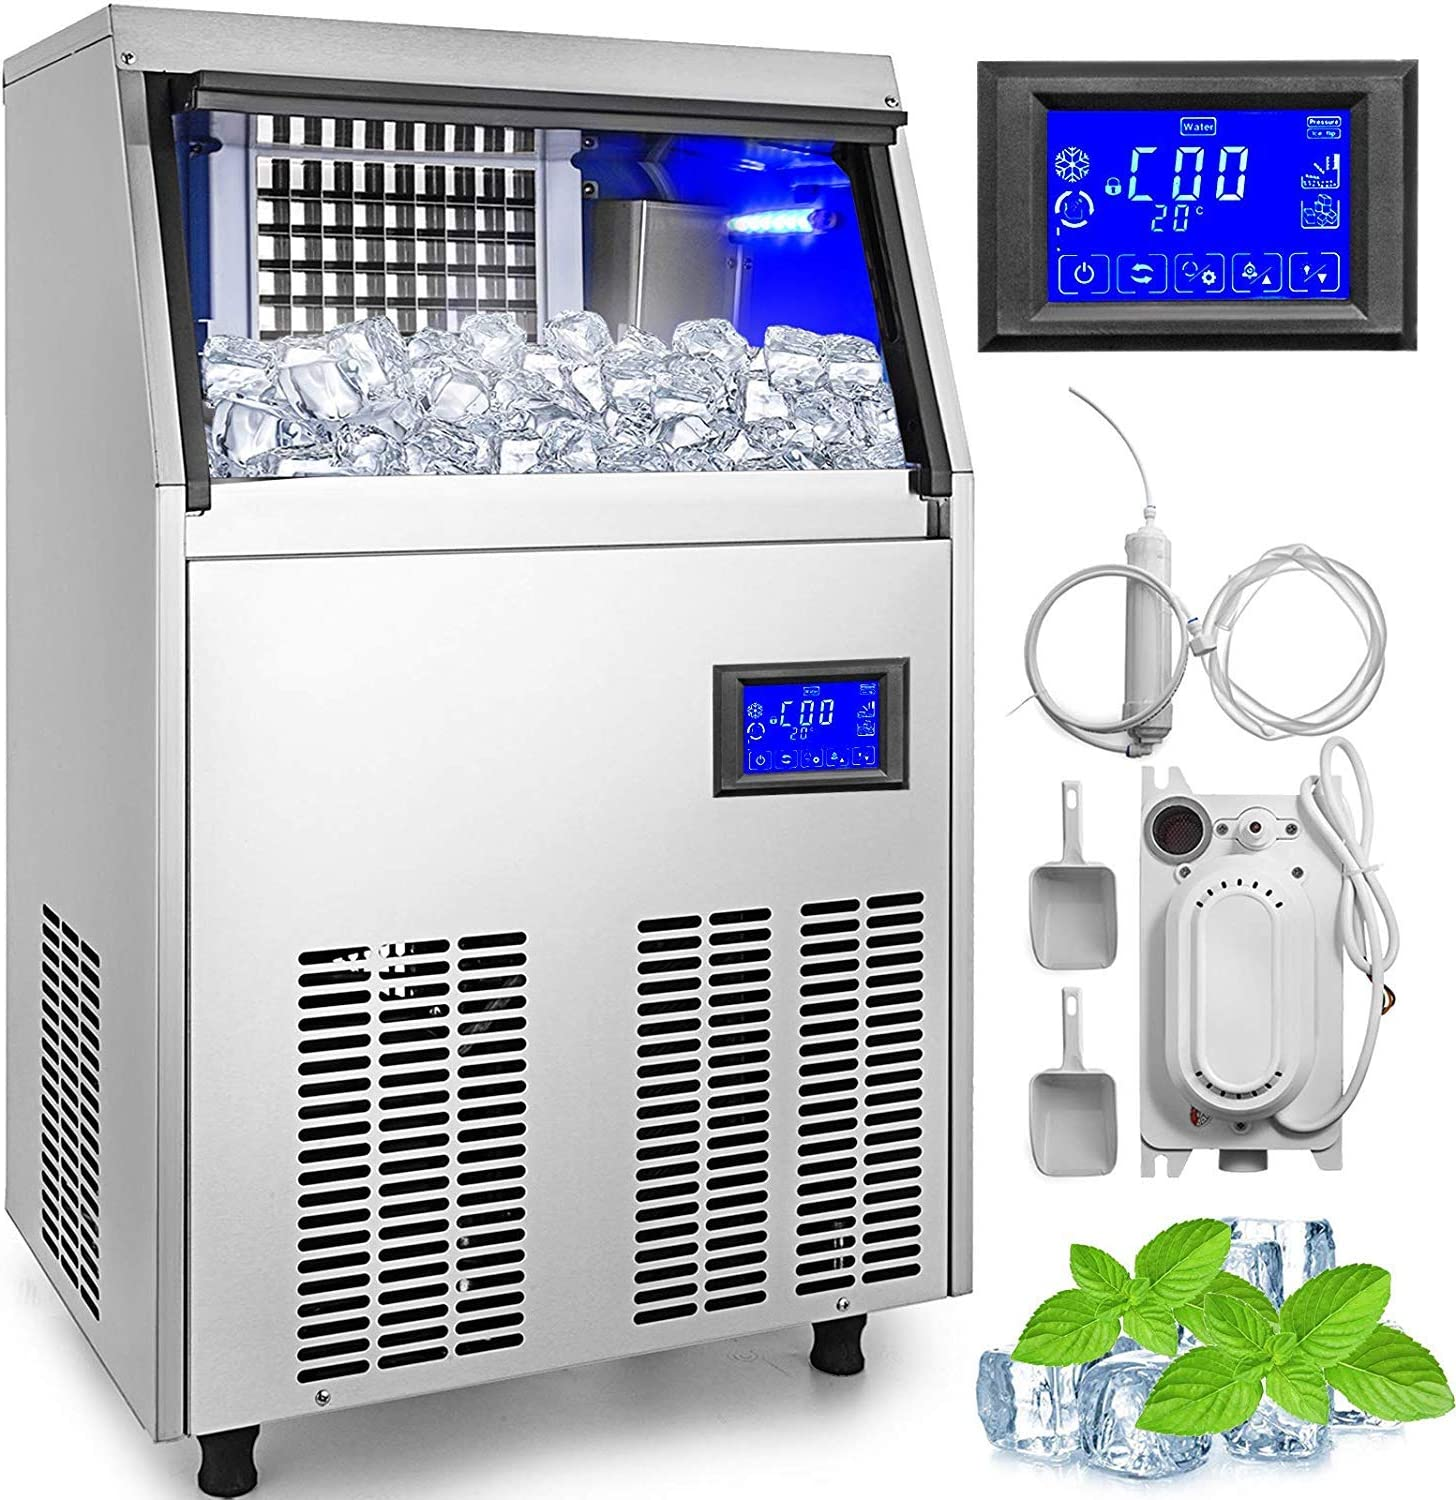 VEVOR 110V Commercial Ice Makers 90-100LBS/24H with Water Drain Pump 33LBS Storage Free-Standing 4x9 Cubes LCD Display Auto Clean for Restaurant Bar, 90-100LBS, Includes Scoop and Connection Hose